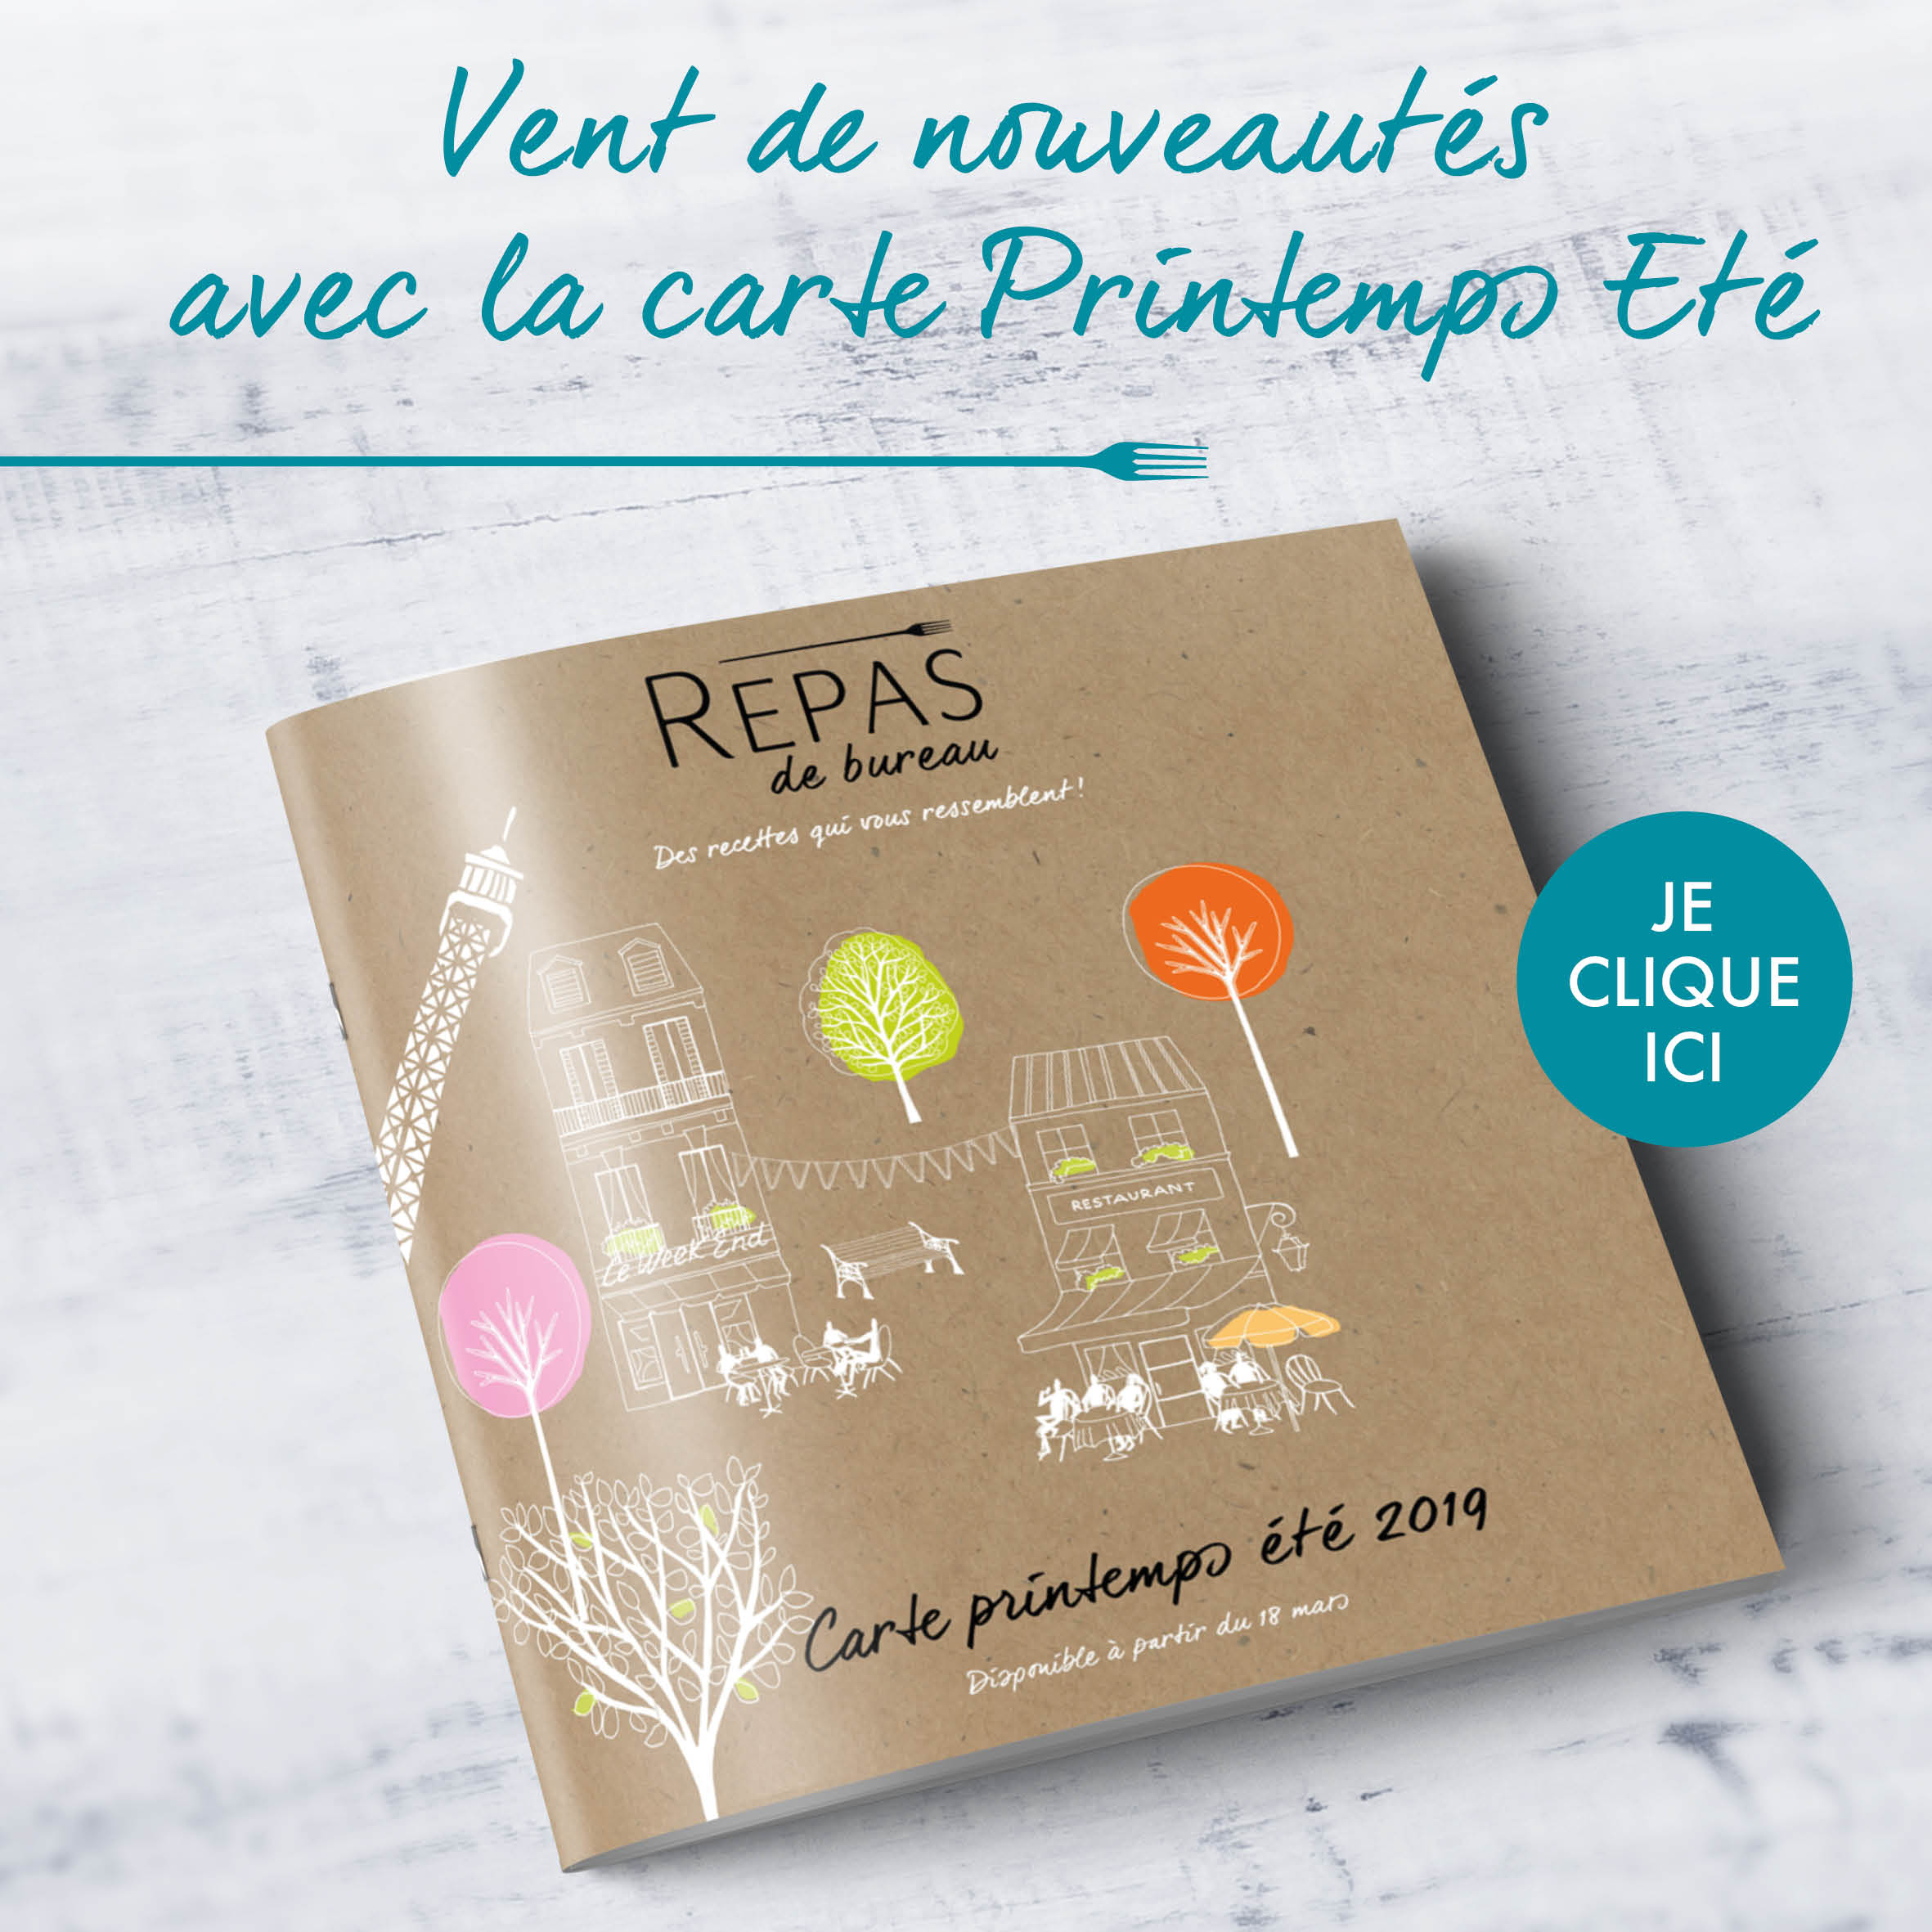 Catalogue printemps ete repas de bureau